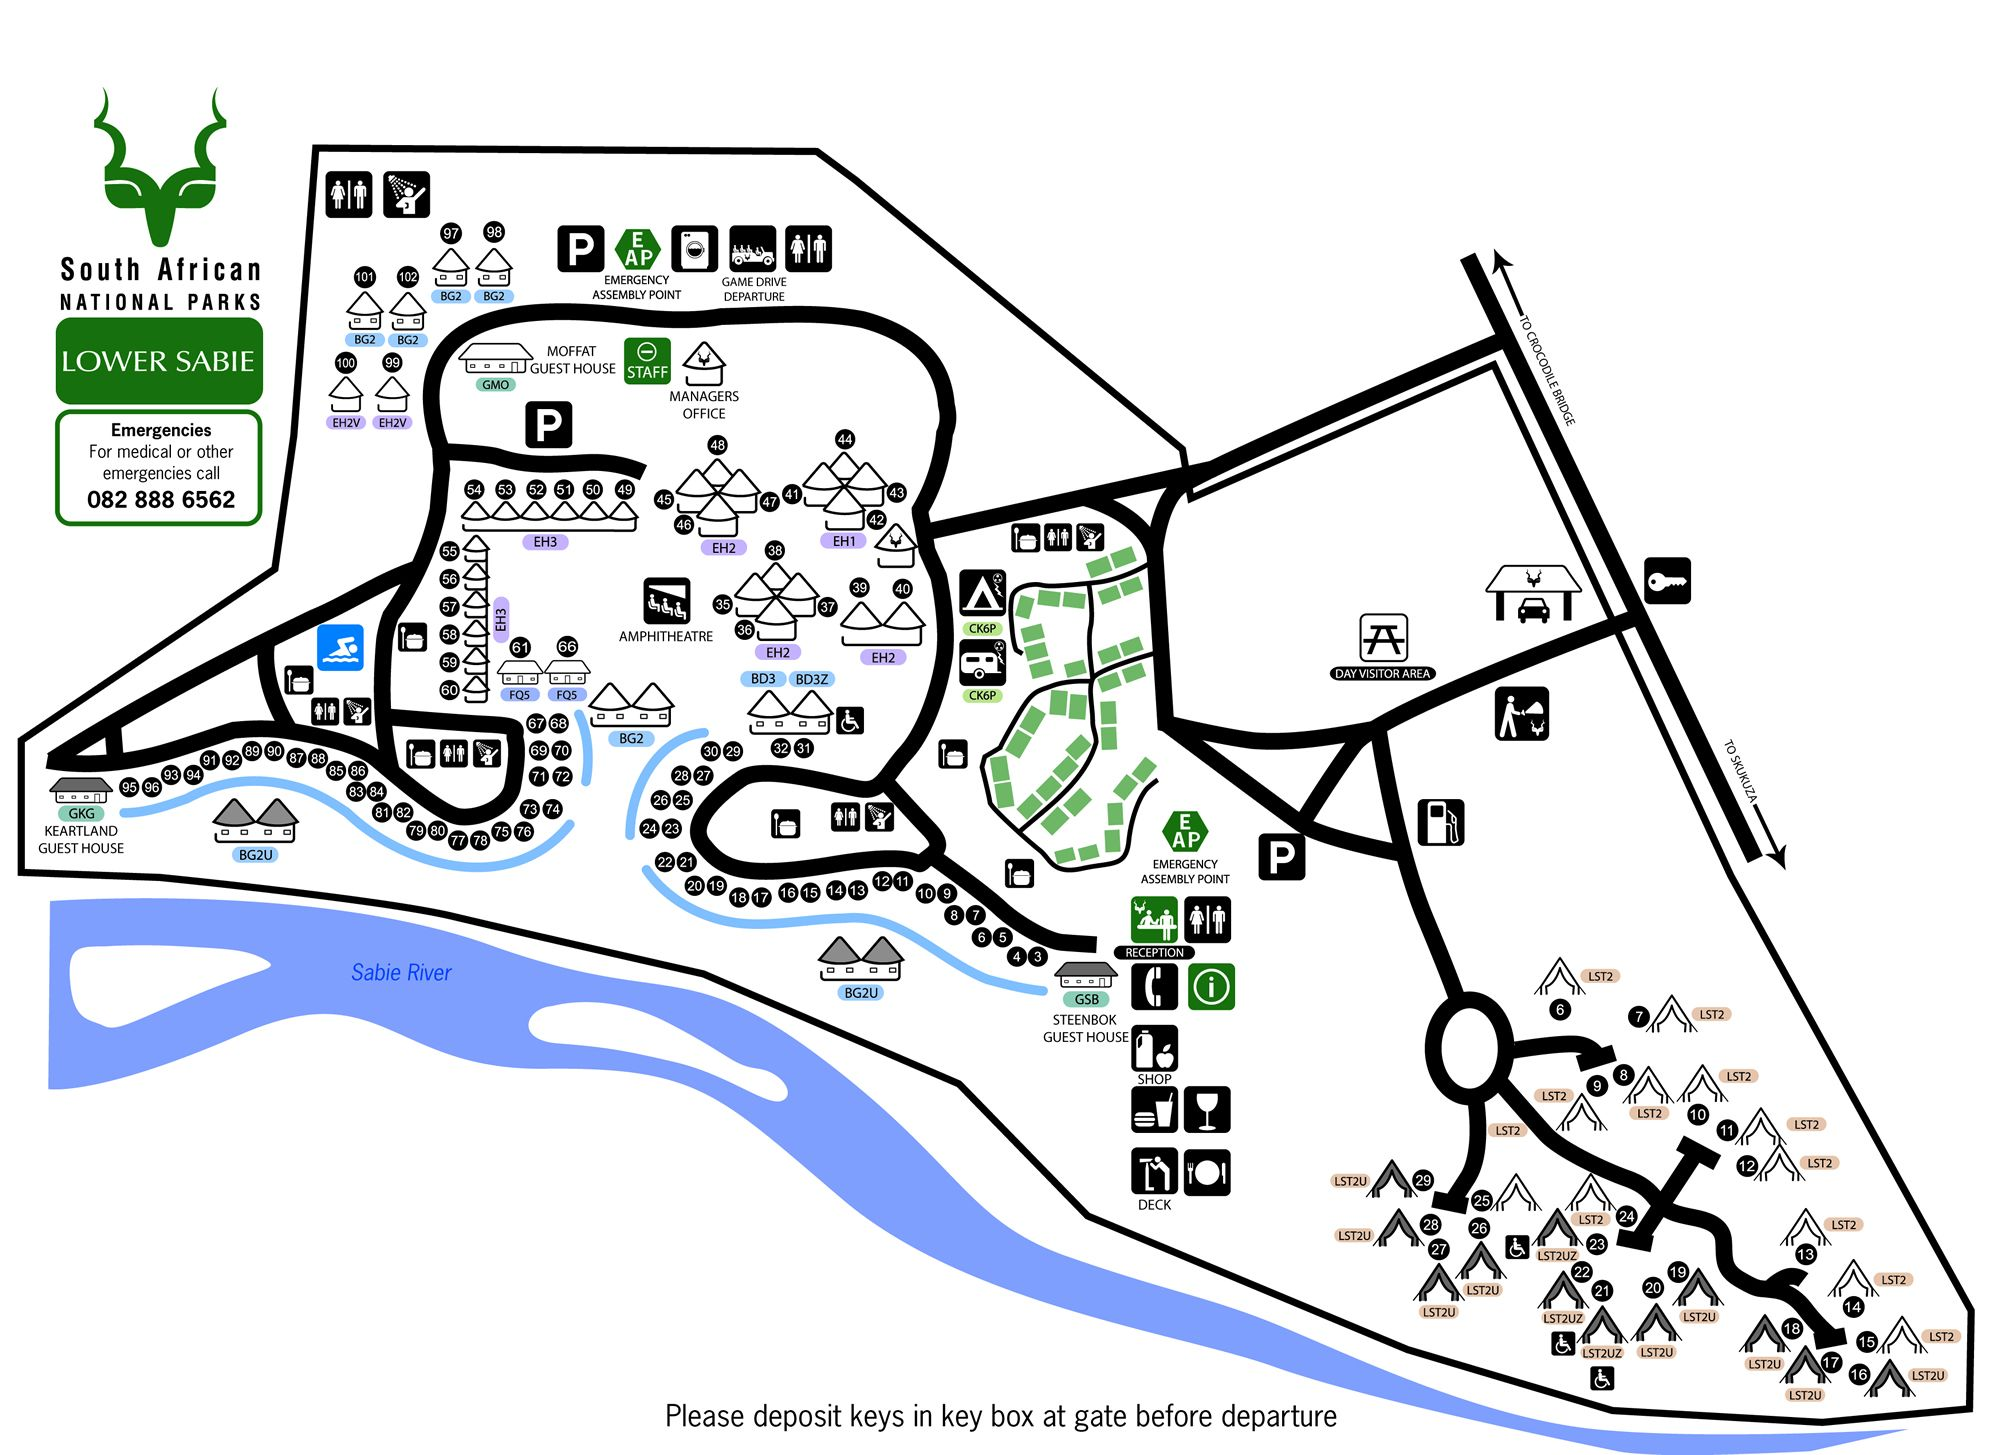 lower sabie rest camp map  Google Search  Iwc  Pinterest  Iwc